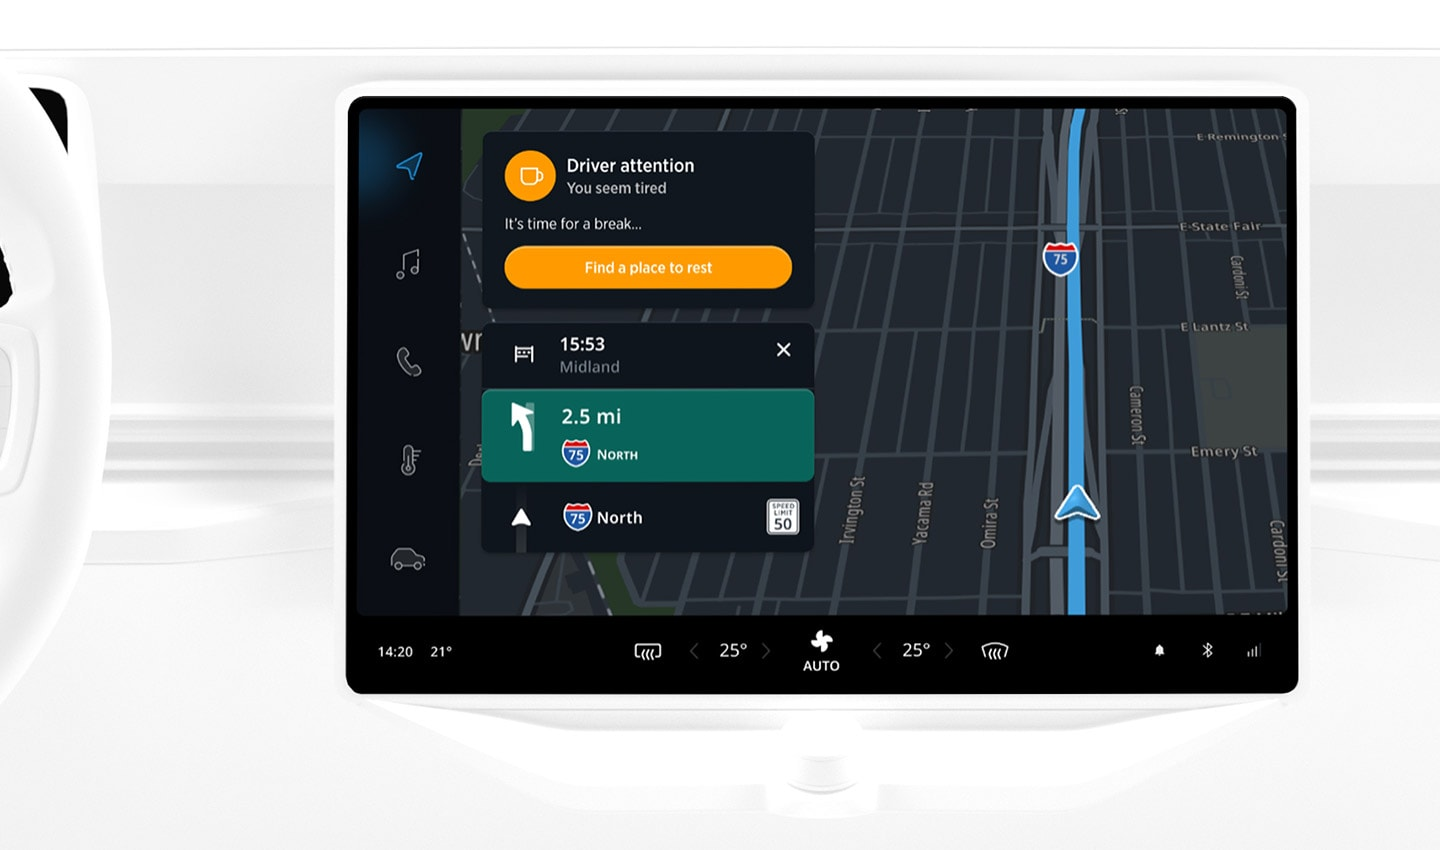 When a driver is showing signs of tiredness, the TomTom navigation will alert them and suggest they find a place to rest.